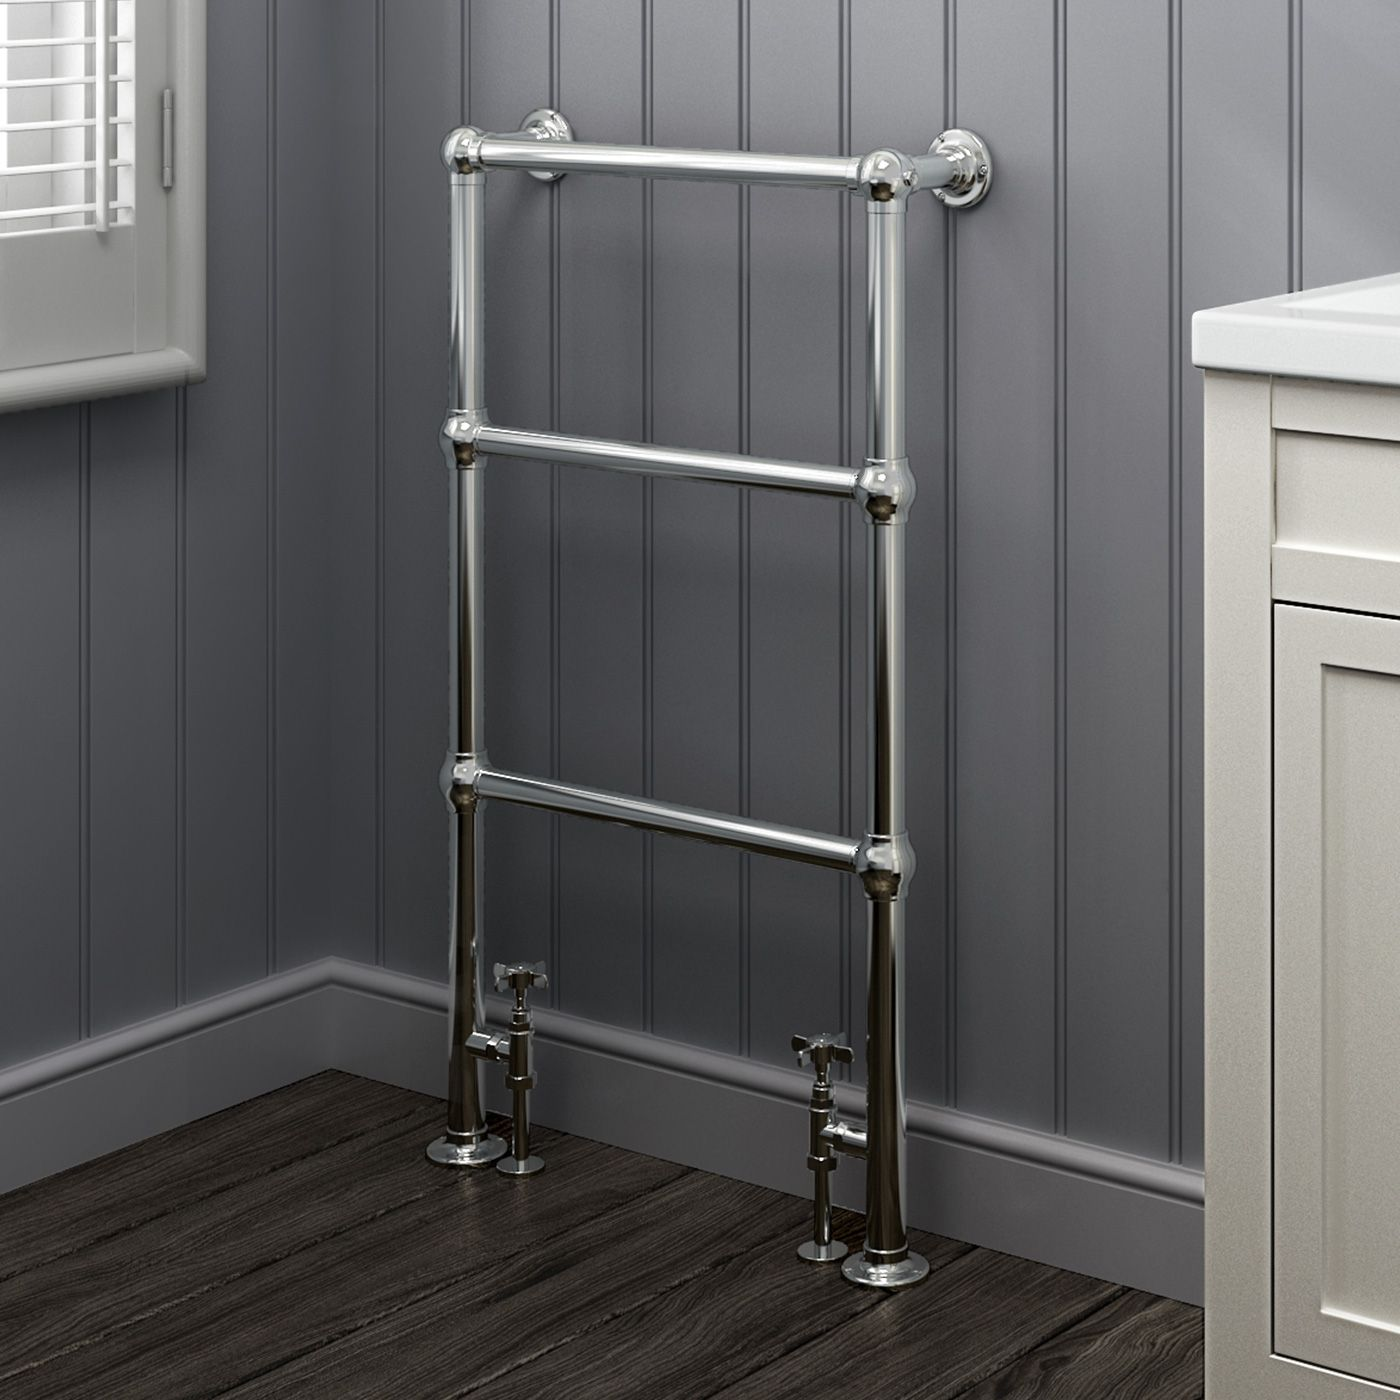 Victoria Traditional Towel Radiator In Chrome 914mm X 535mm